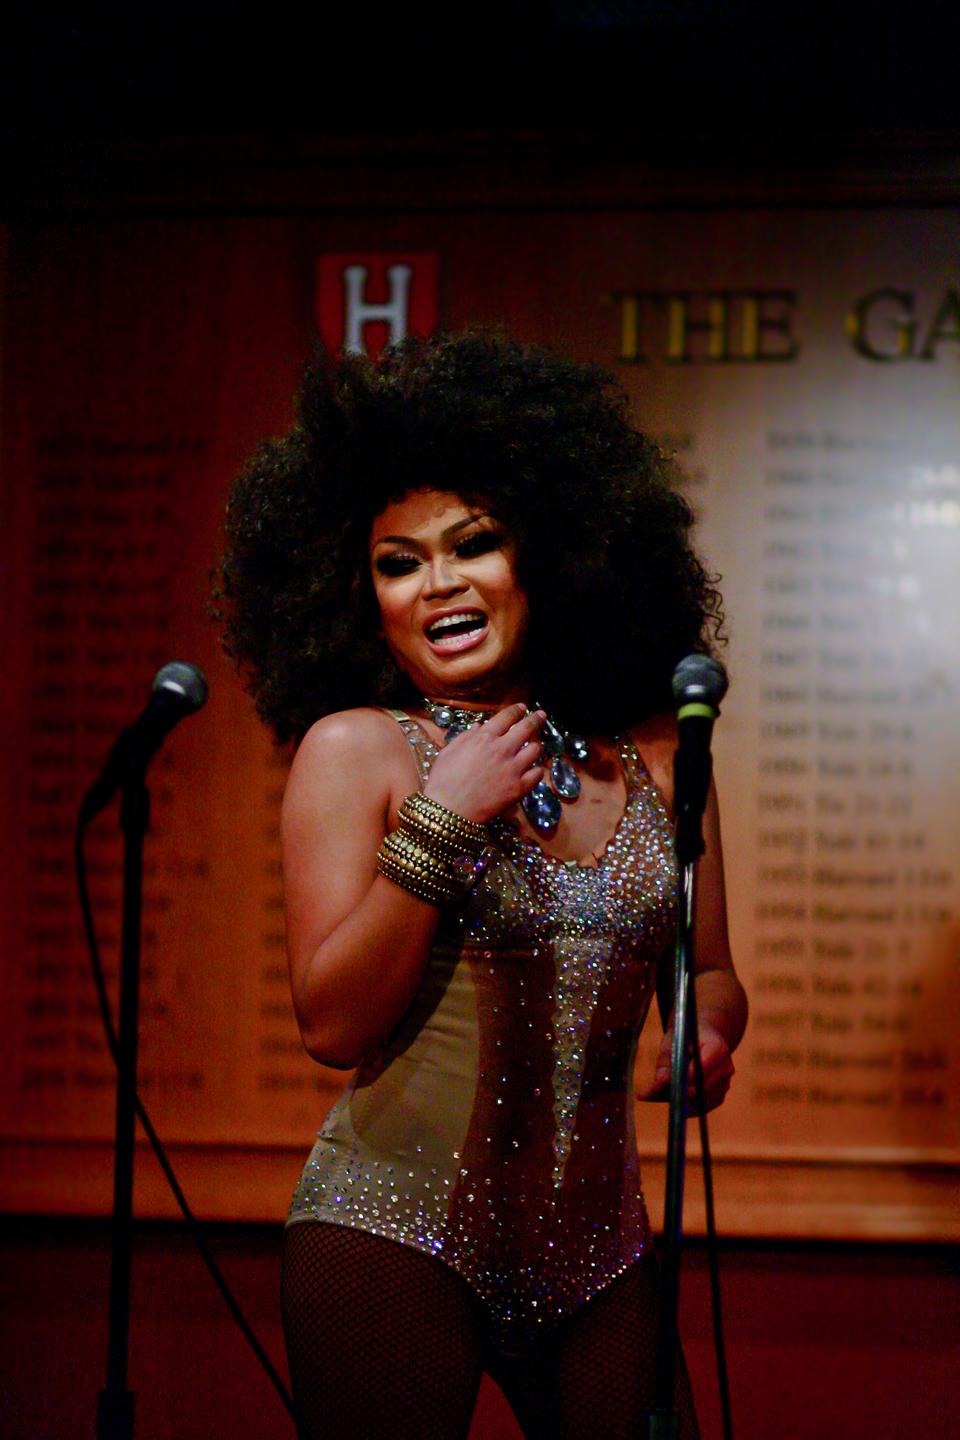 Jujubee, star of the television show RuPaul's Drag Race, performs as a special guest on Saturday night's Drag Night, held by Harvard's Queer Straight Alliance.